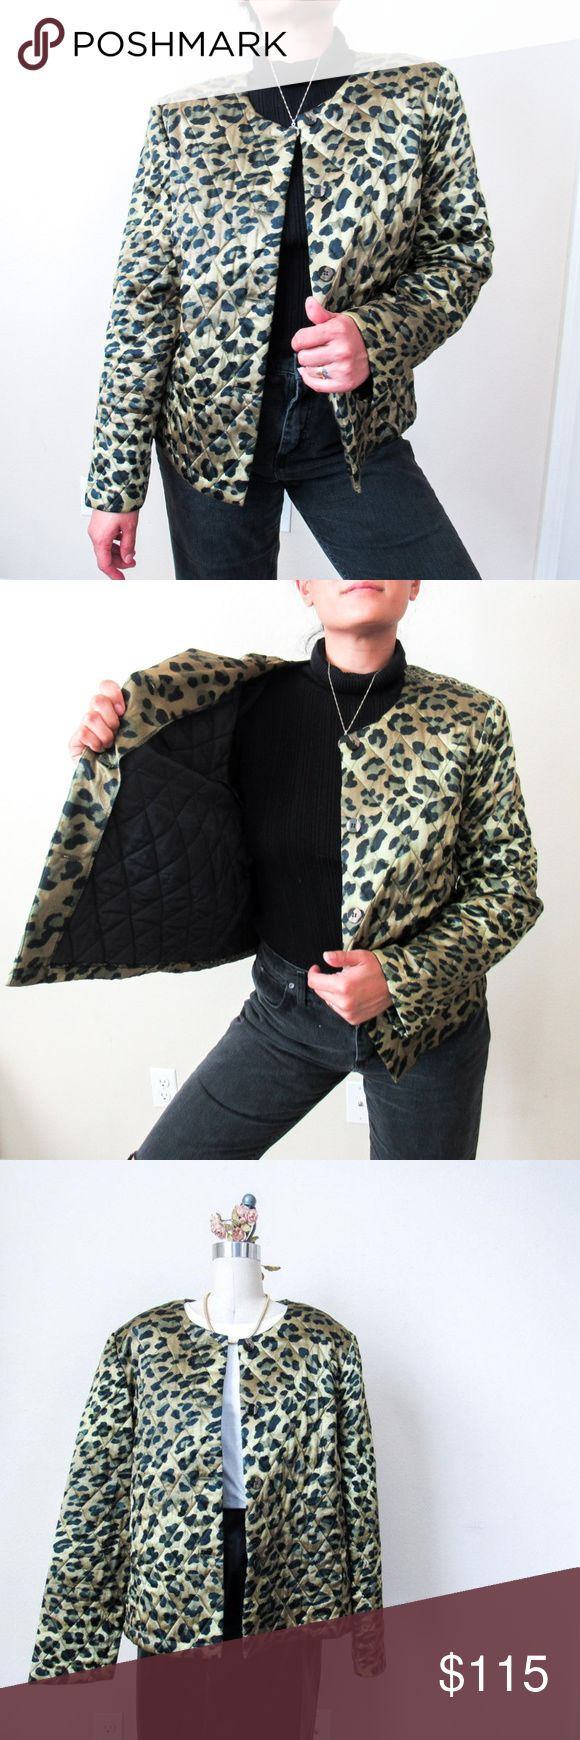 VTG Animal Print Quilted Puffer Jacket SZ M RARE RARE chic vintage animal print …